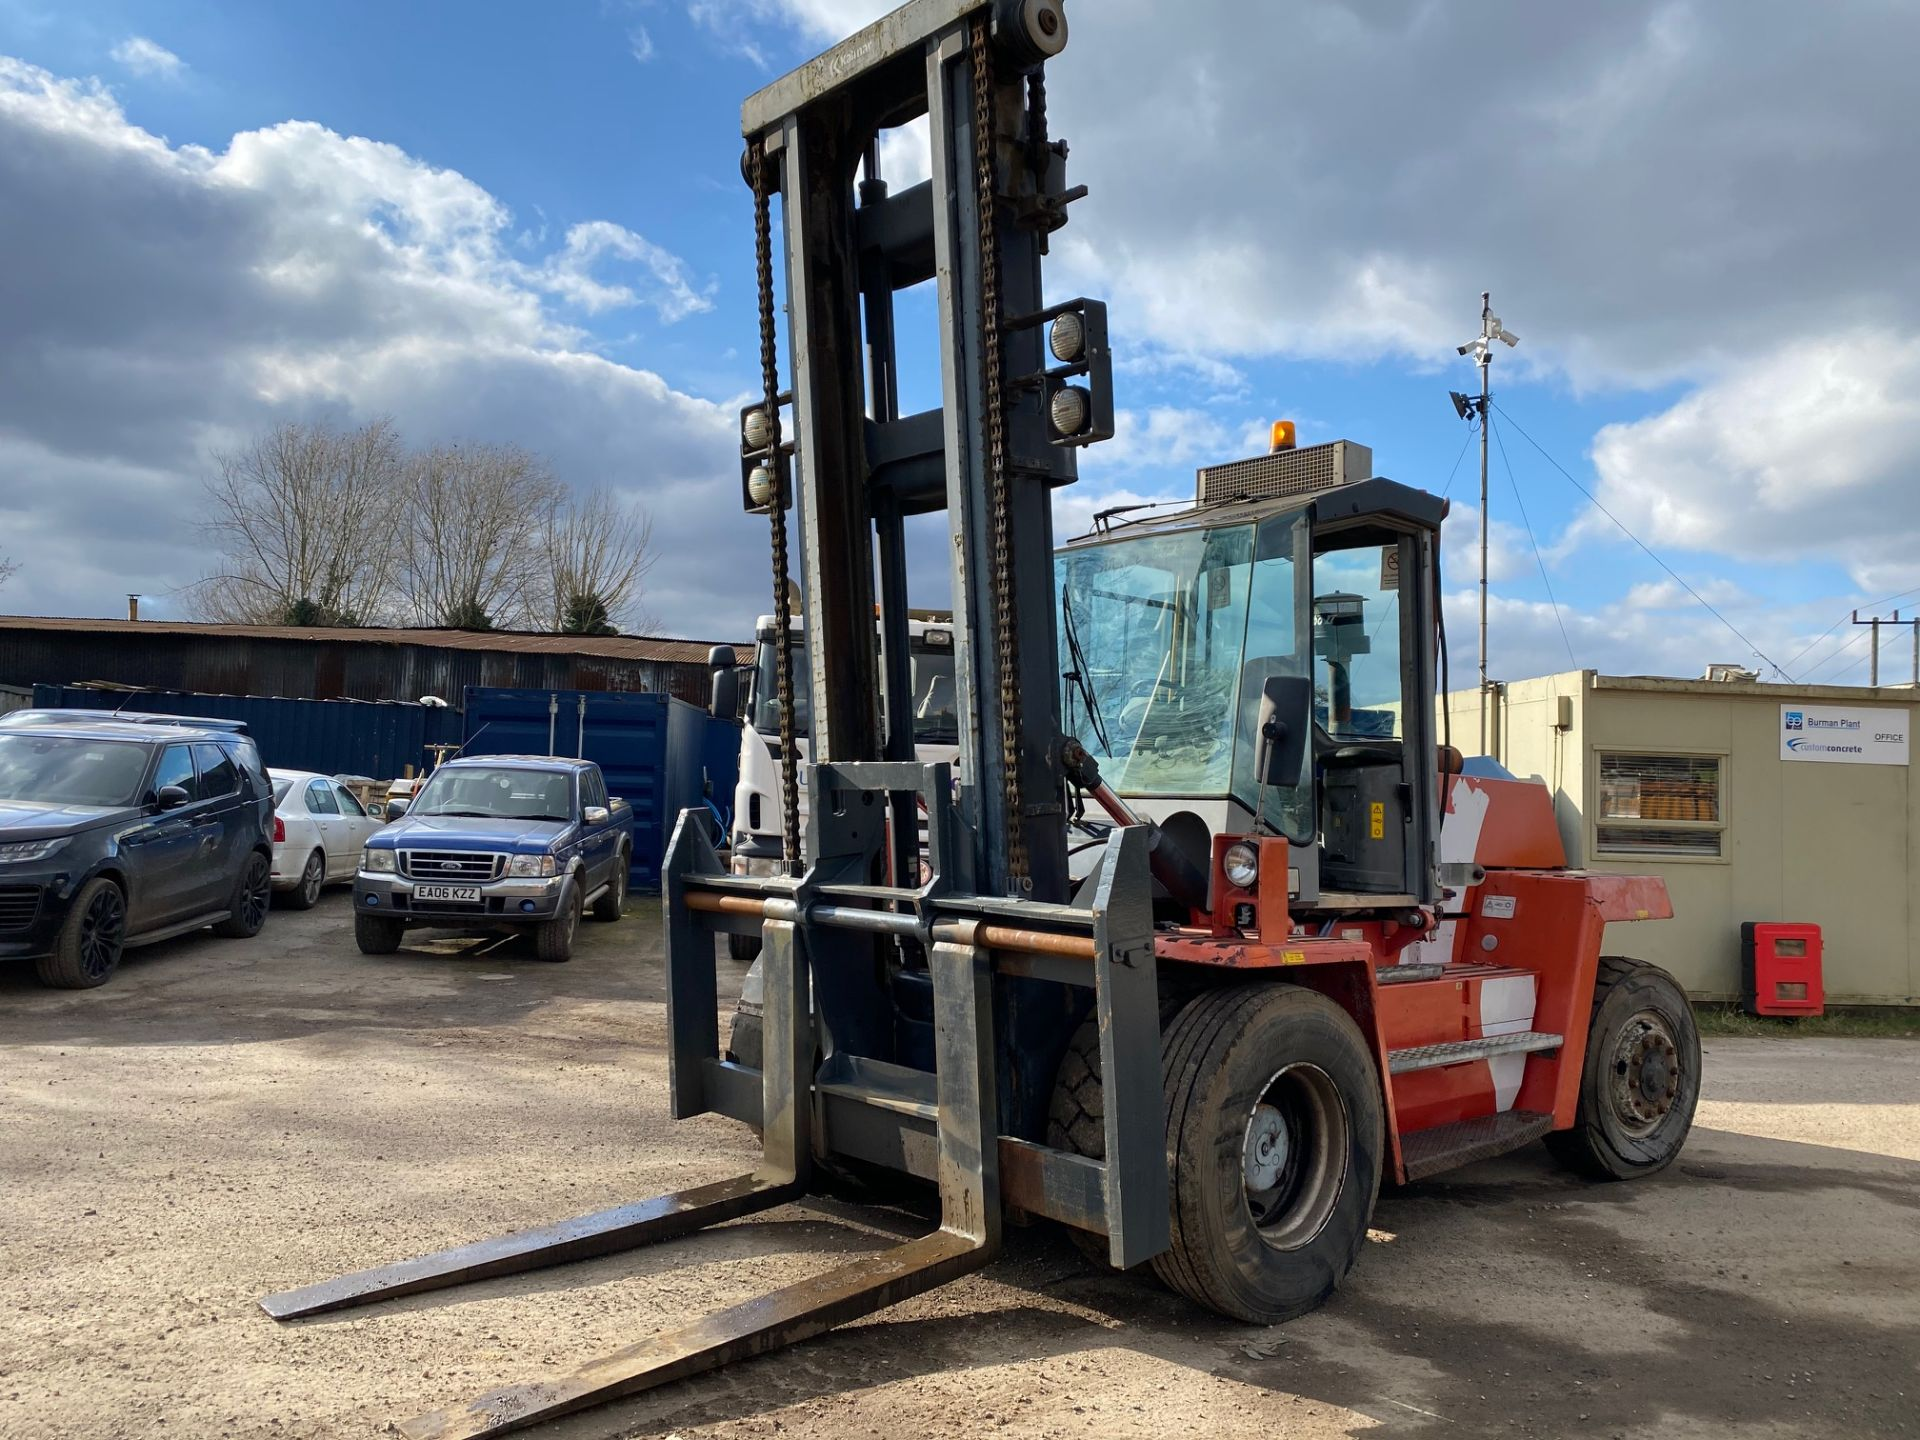 2002 KALMAR DCD100-6 10 TON FORKLIFT, STARTS, DRIVES AND RUNS AS IT SHOULD, THE DOOR IS MISSING - Image 3 of 8